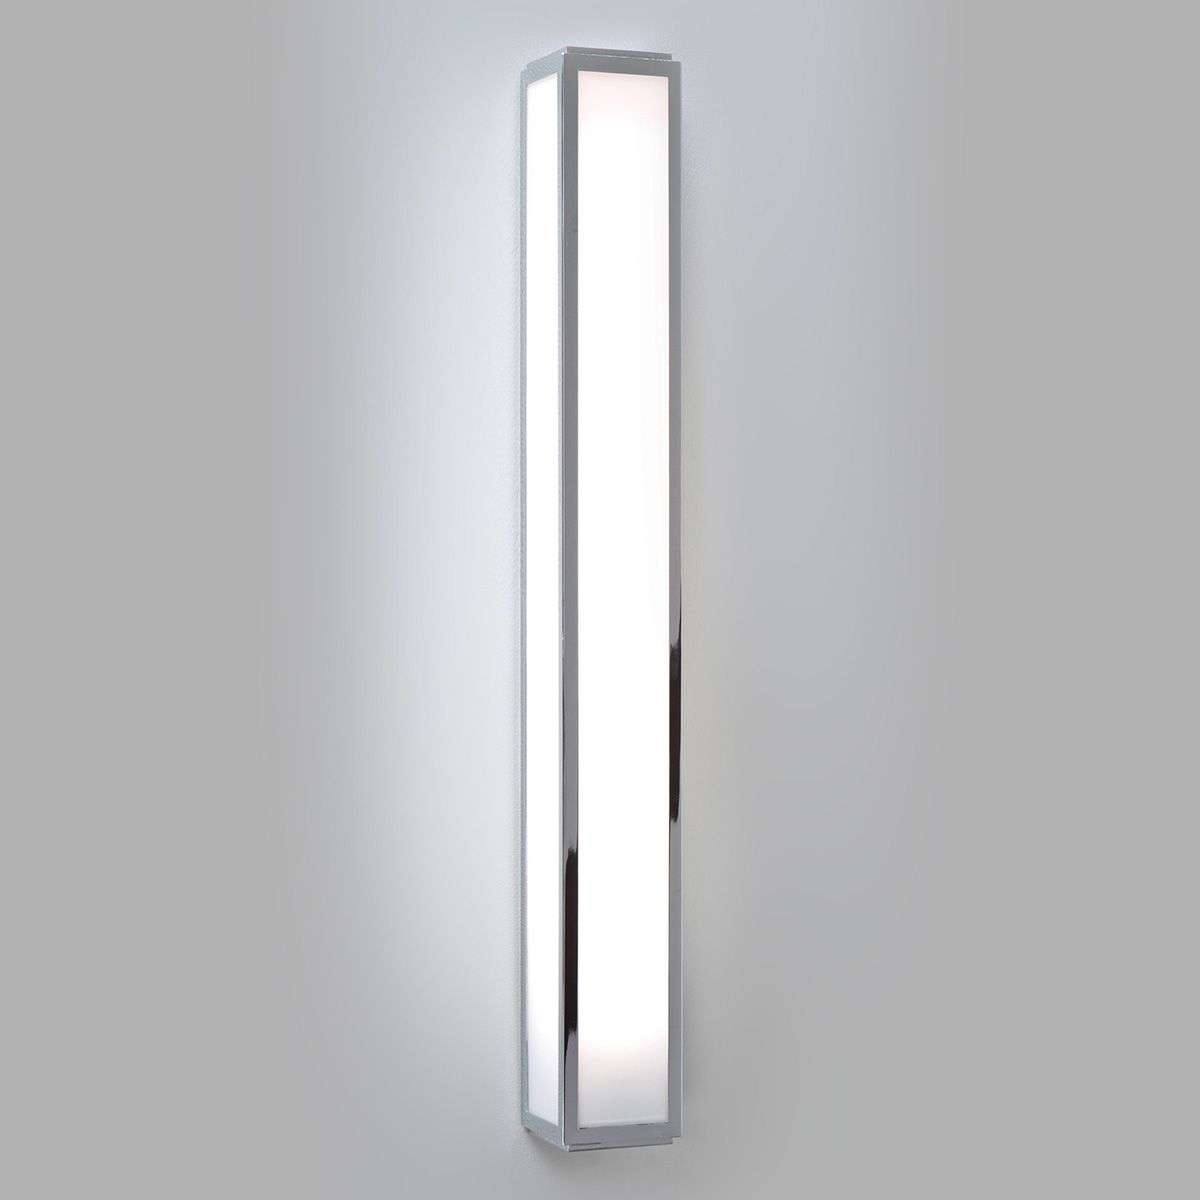 Mashiko 600 Wall Light Elegant-1020381-32